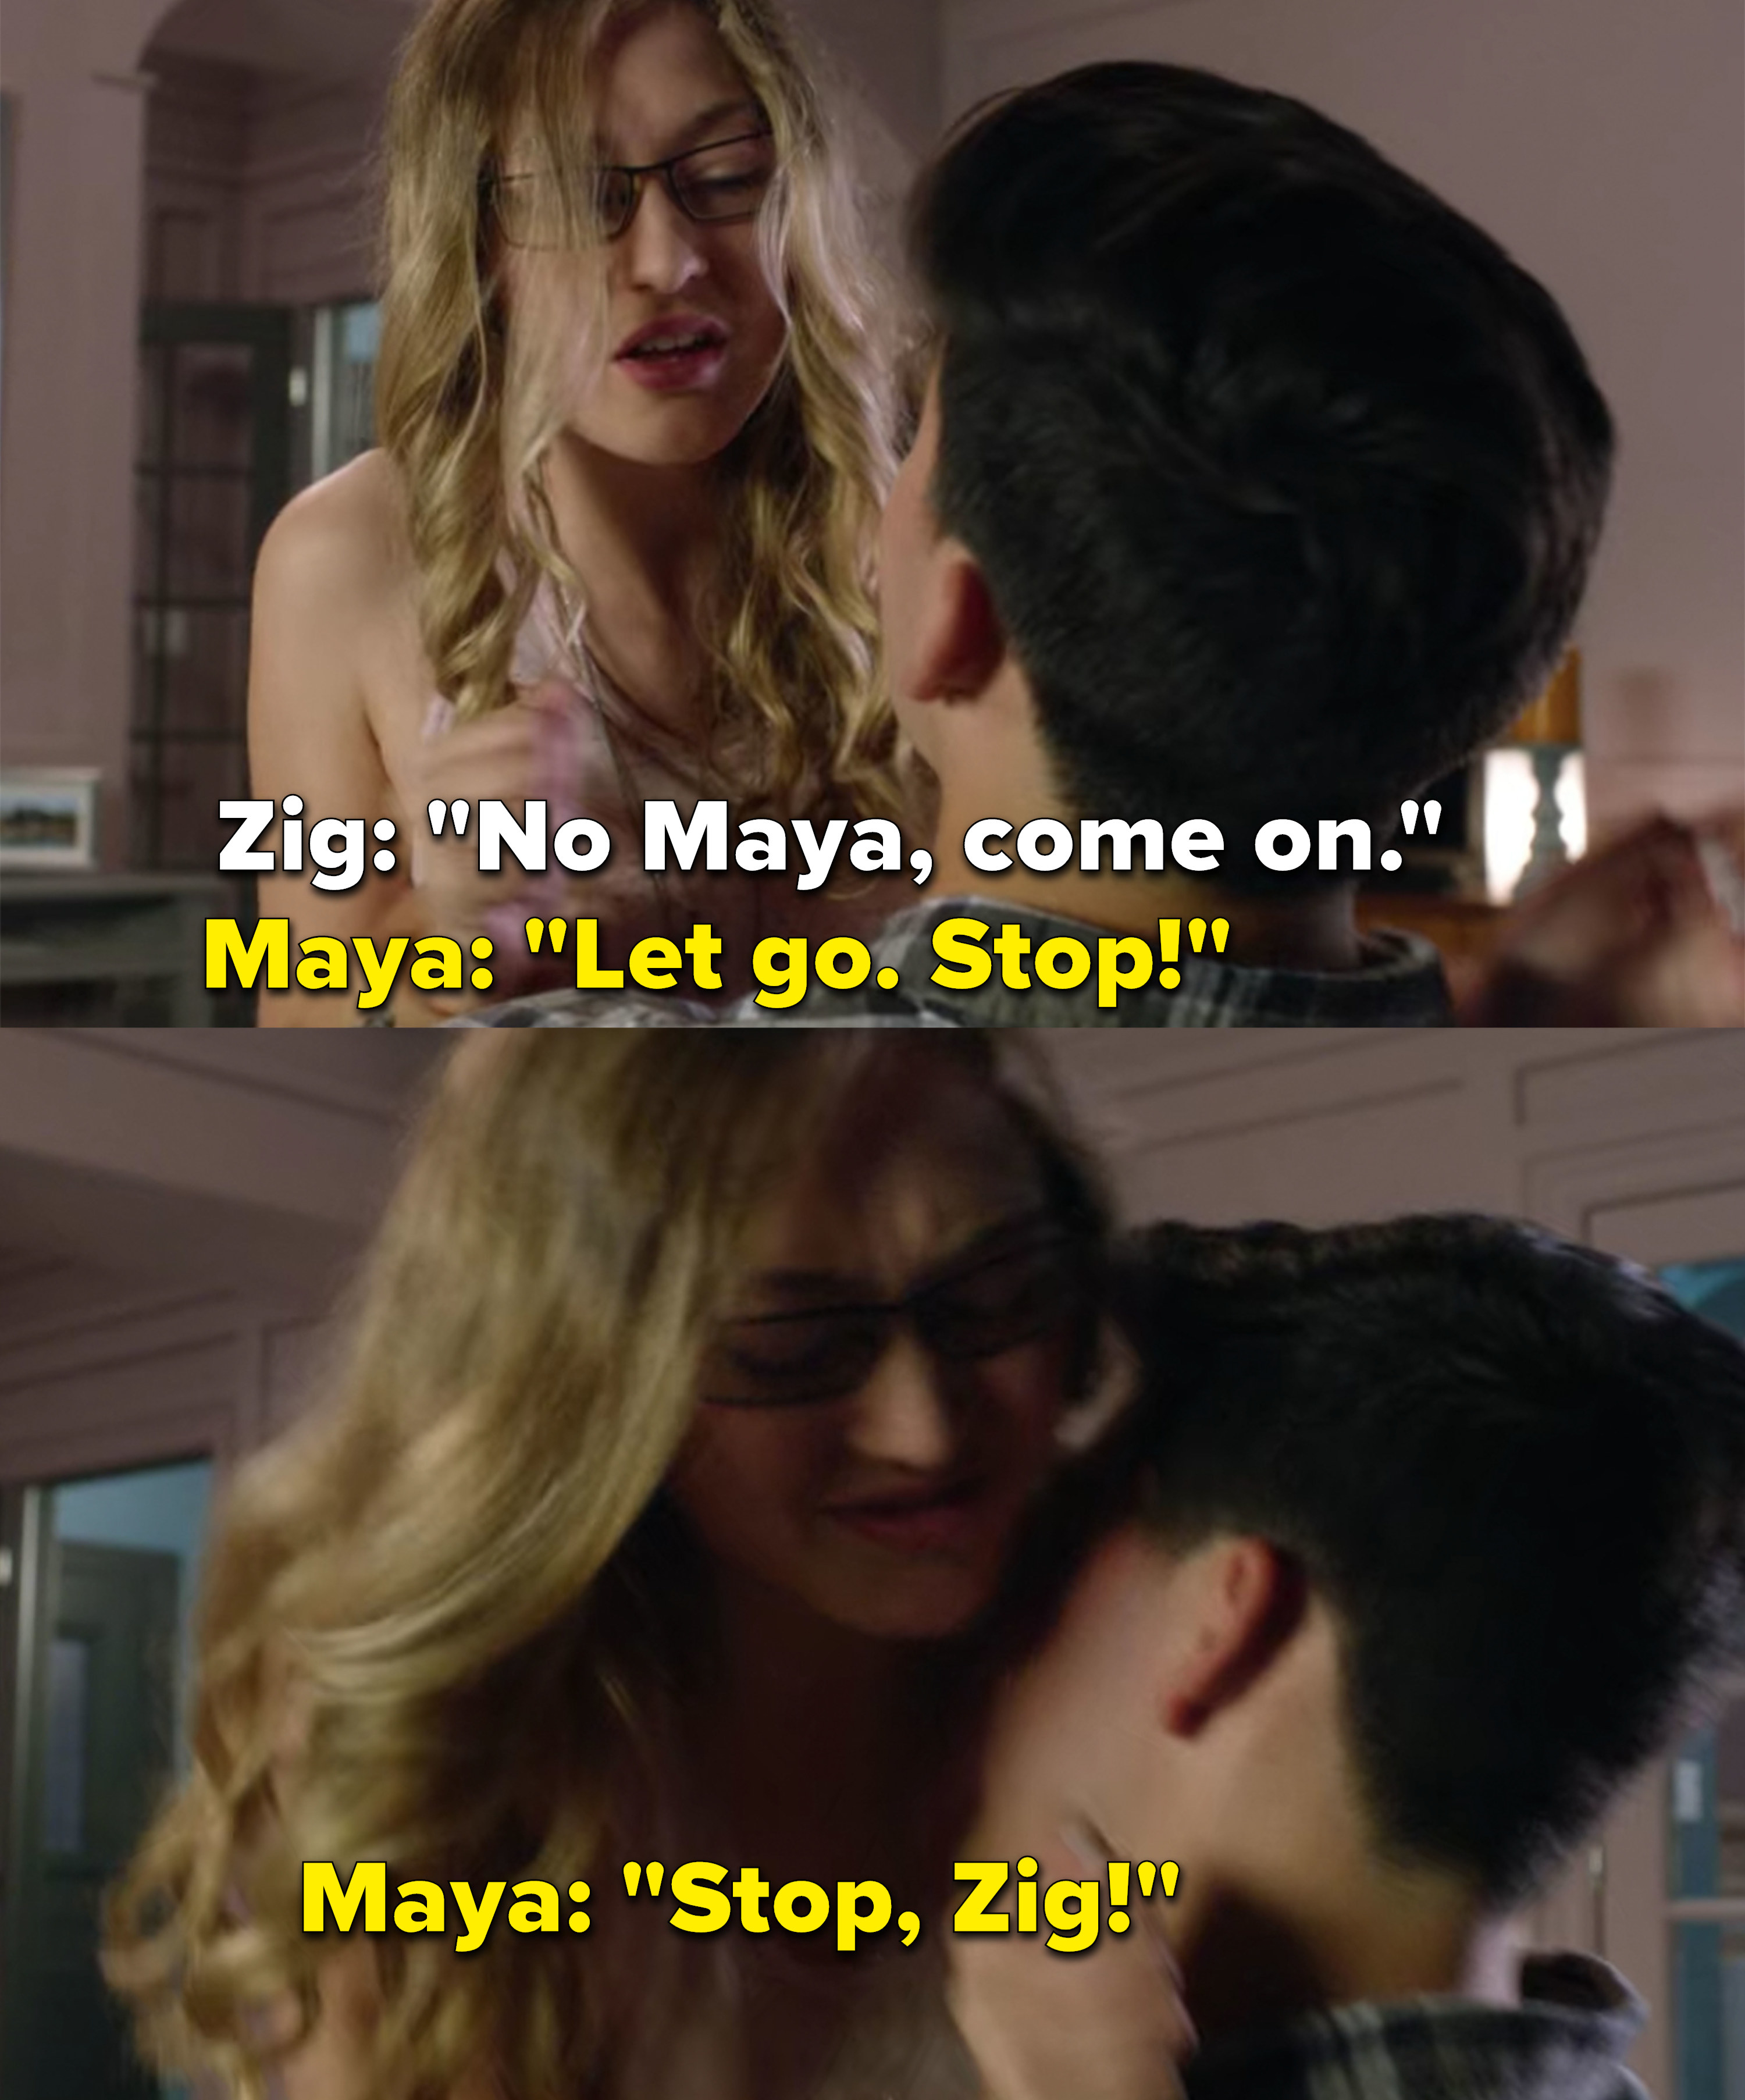 Zig climbs on top of Maya and she tells him to stop and let go, he refuses